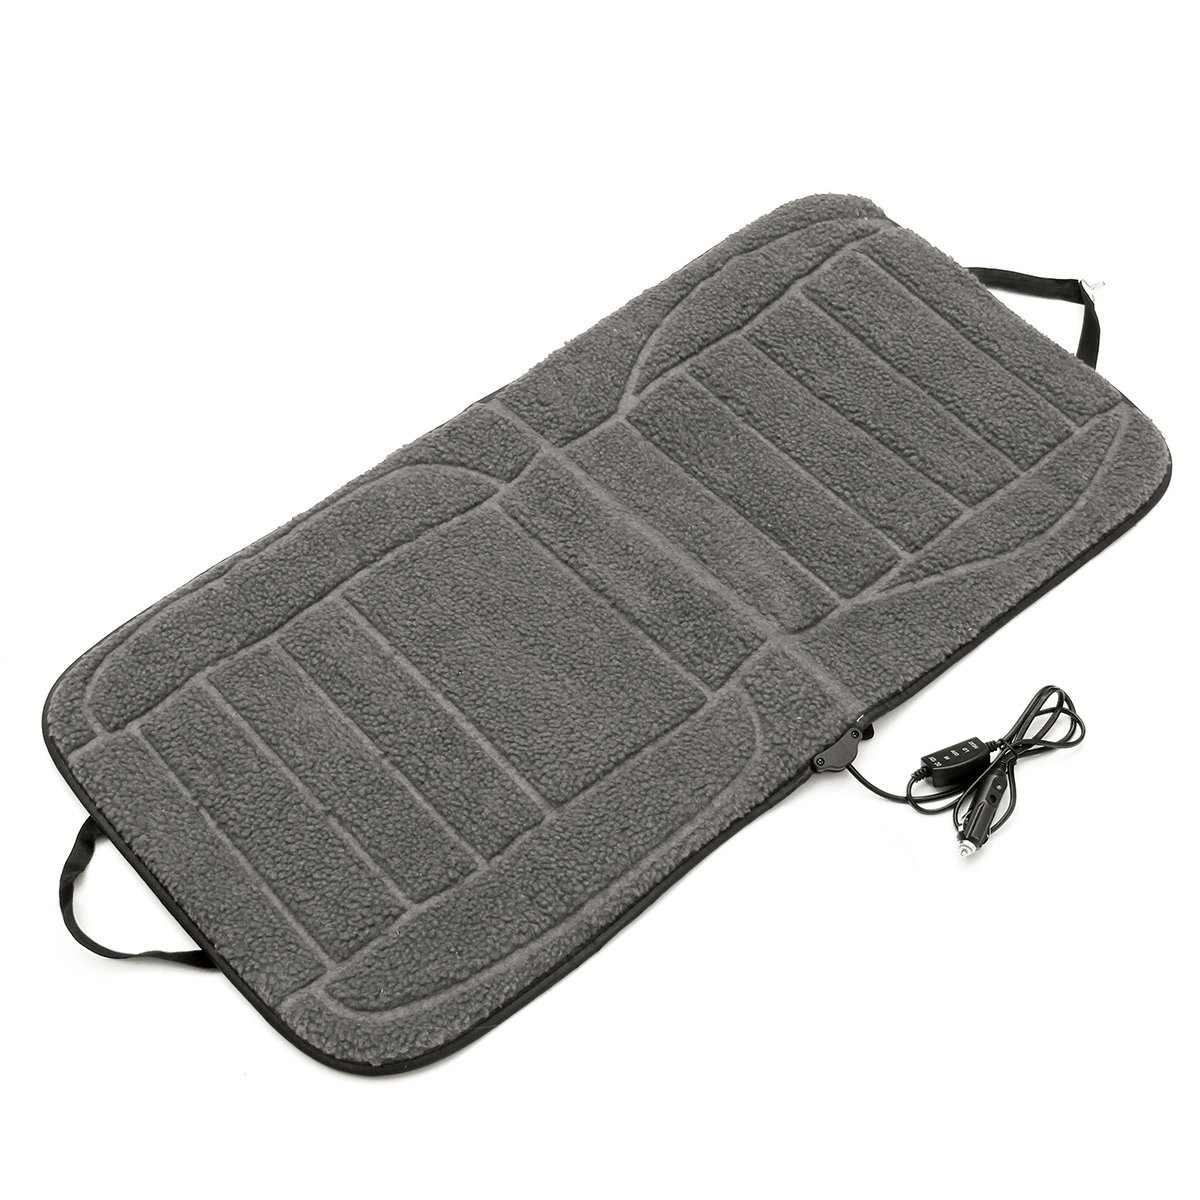 12V Car Van Auto Front Seat Heated Cushion Seat Warmer Winter Household Cover Electric Heating Mat